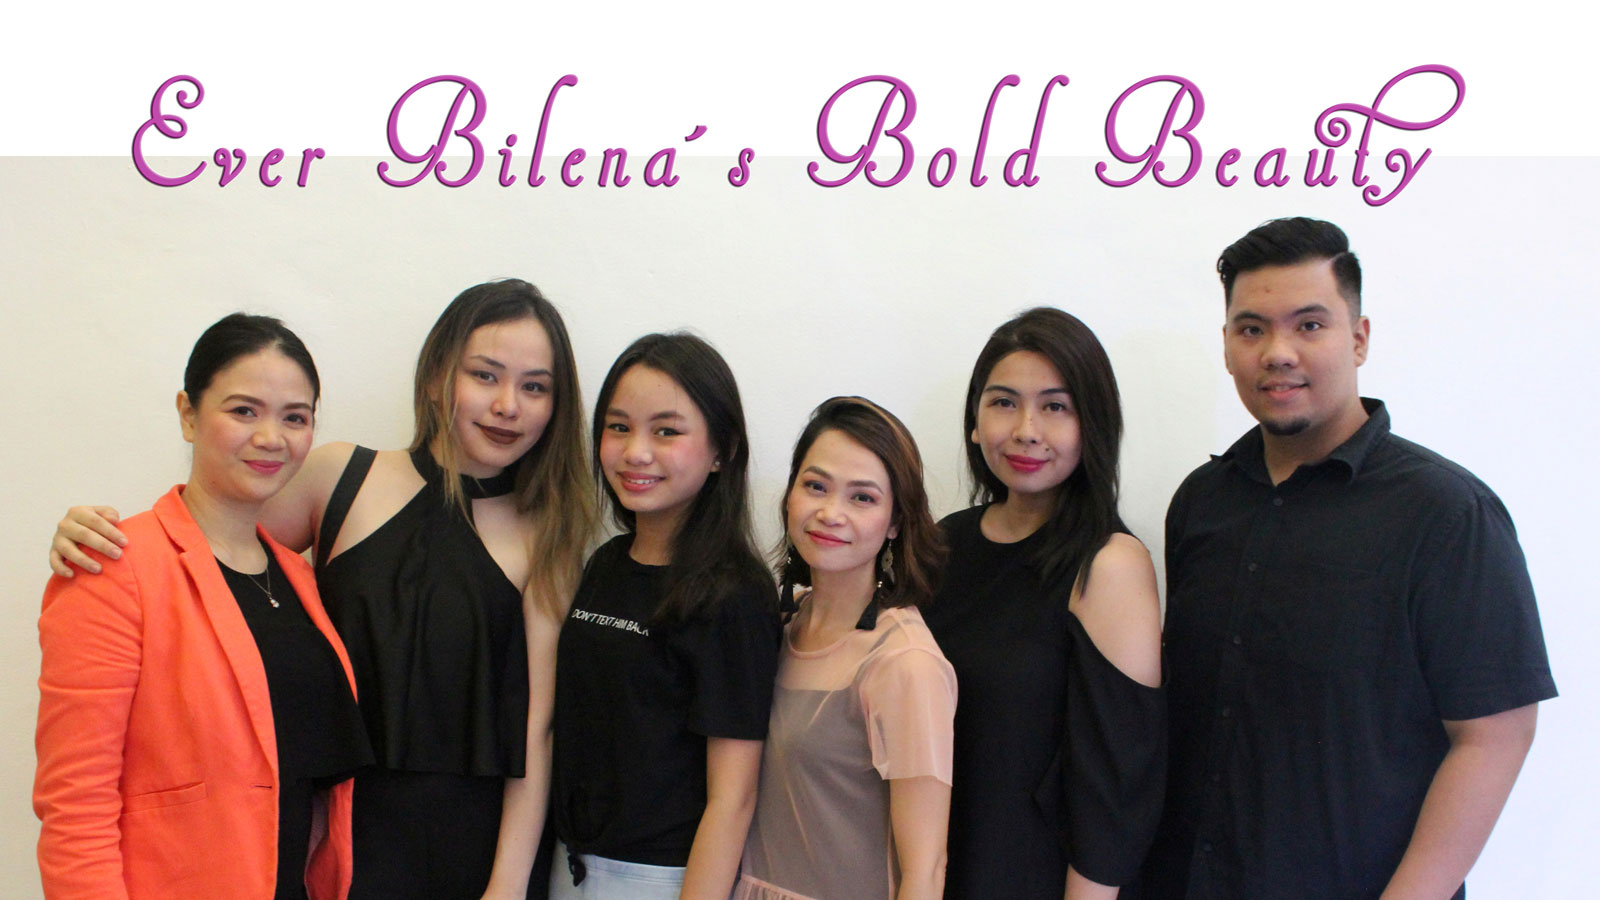 Ever Bilena's Bold Beauty event